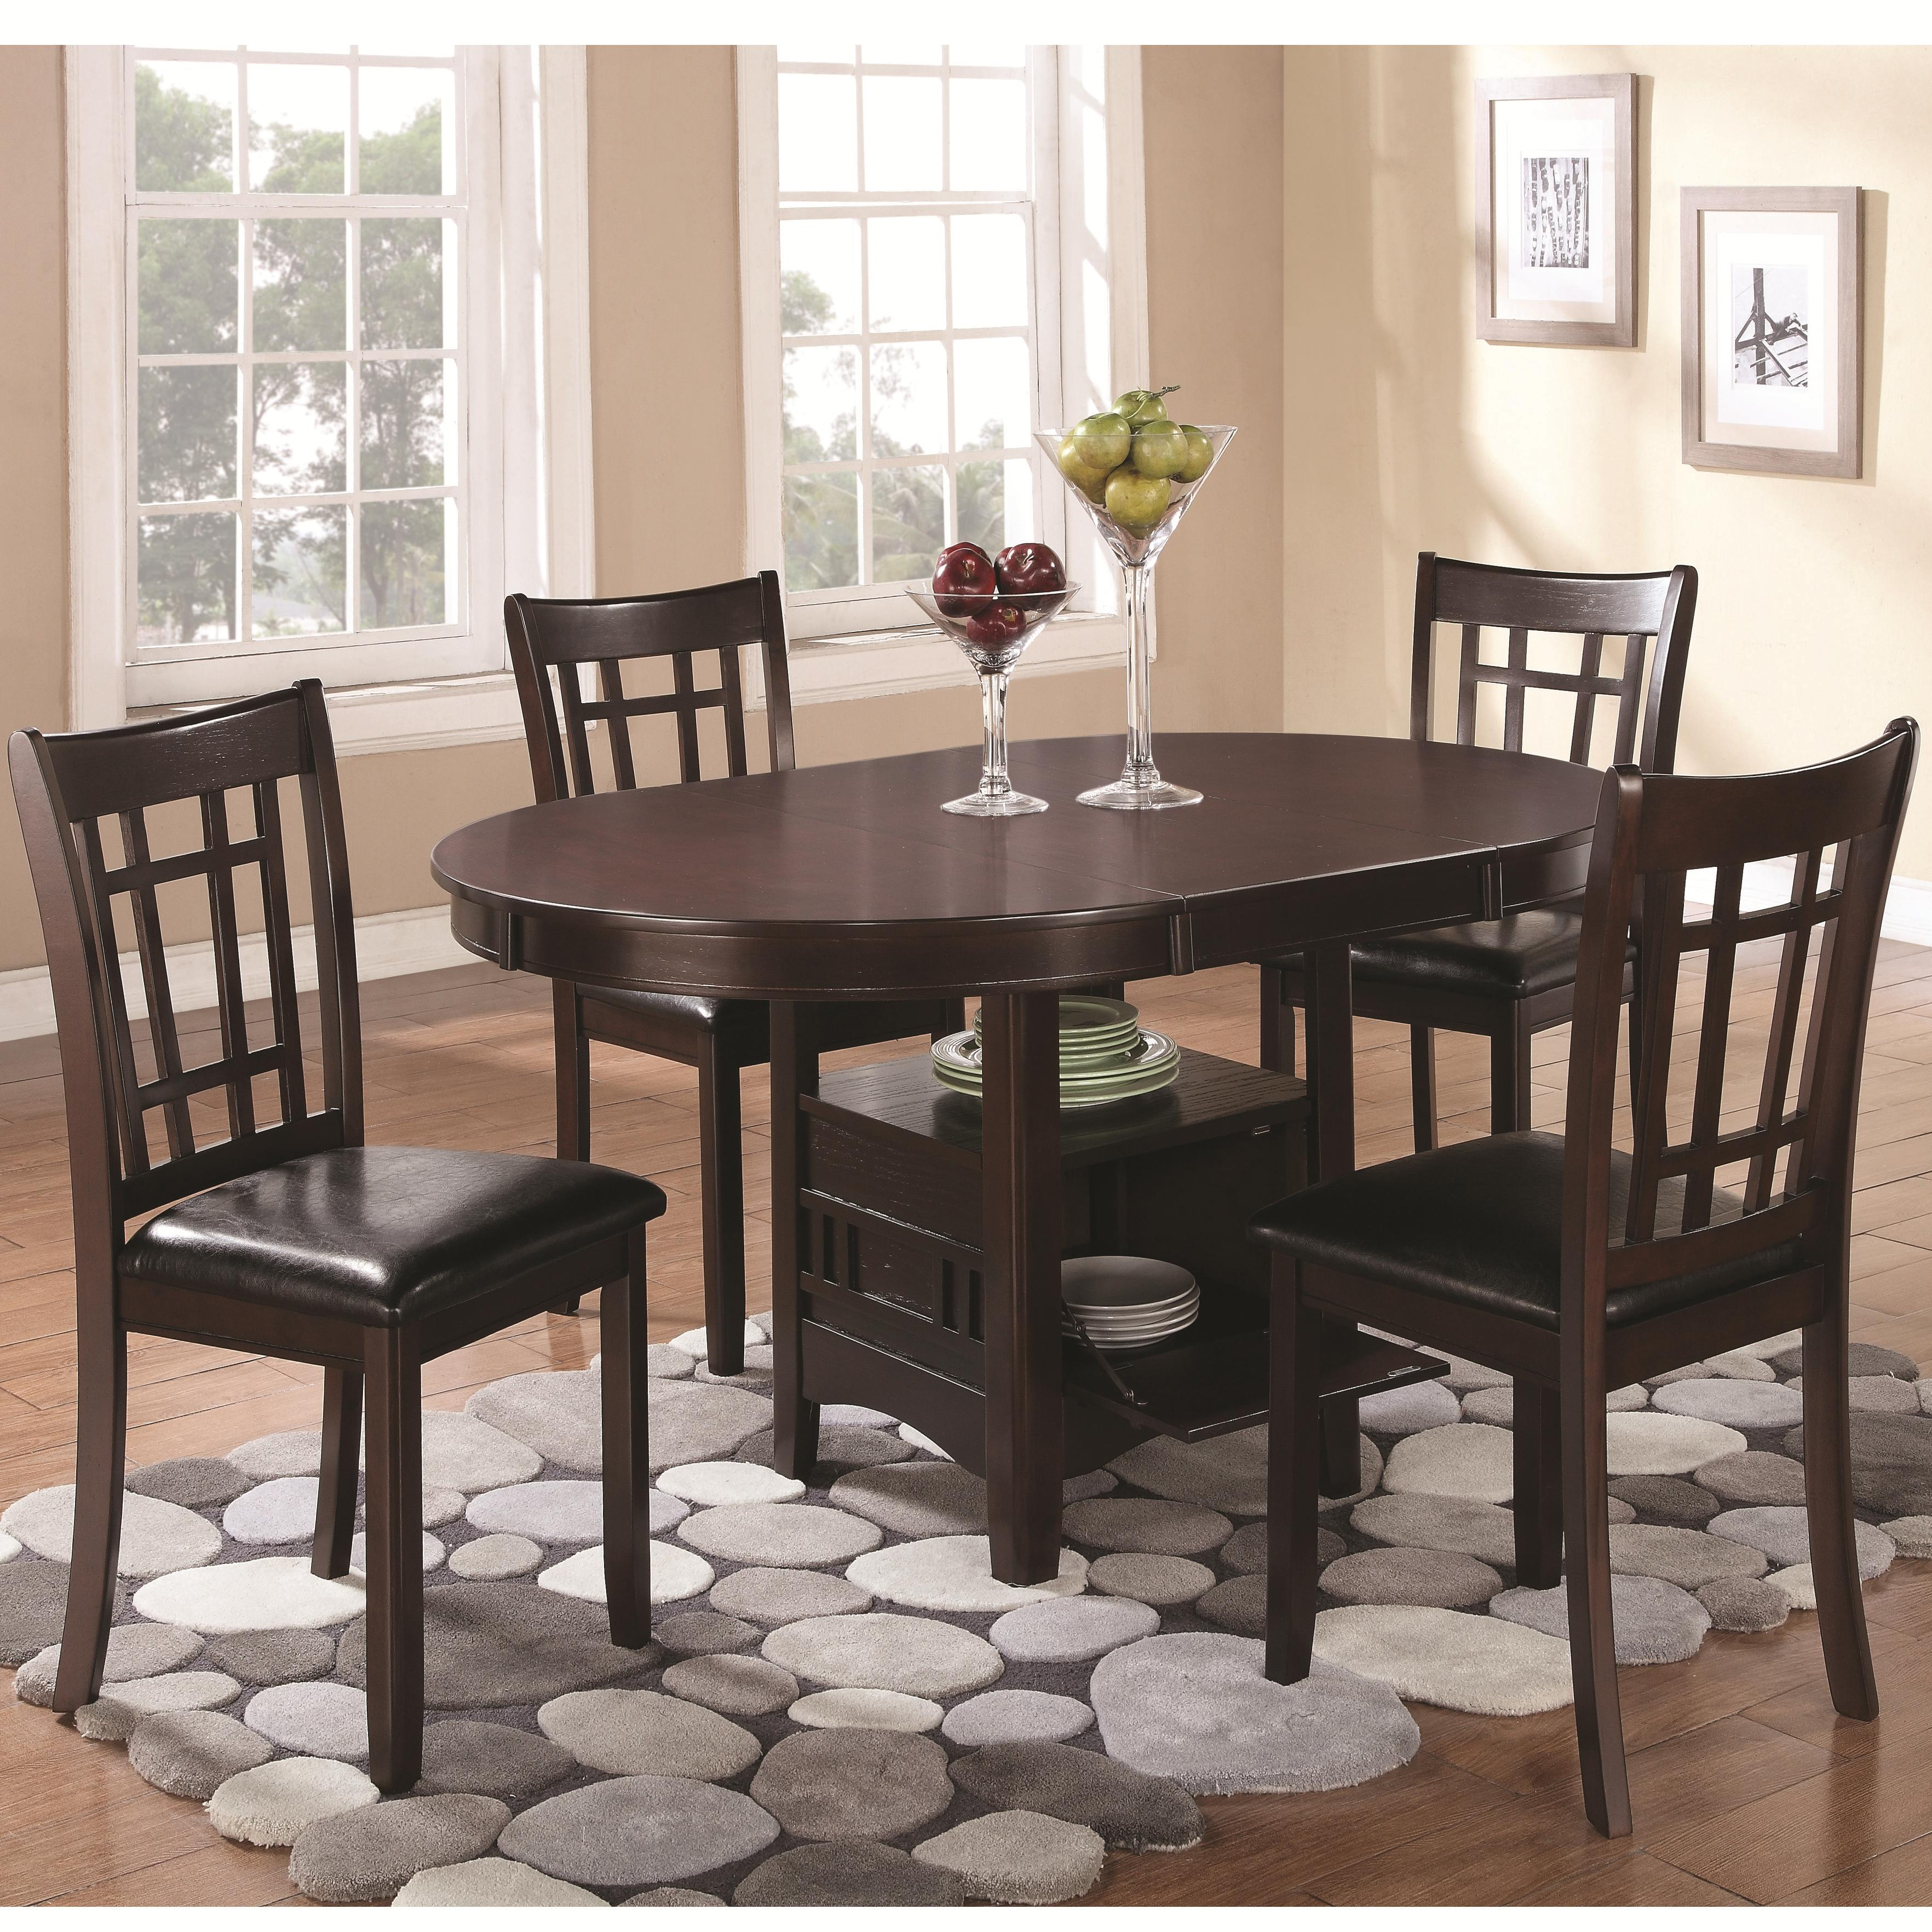 Lavon 5 Piece Dining Set by Coaster at Value City Furniture